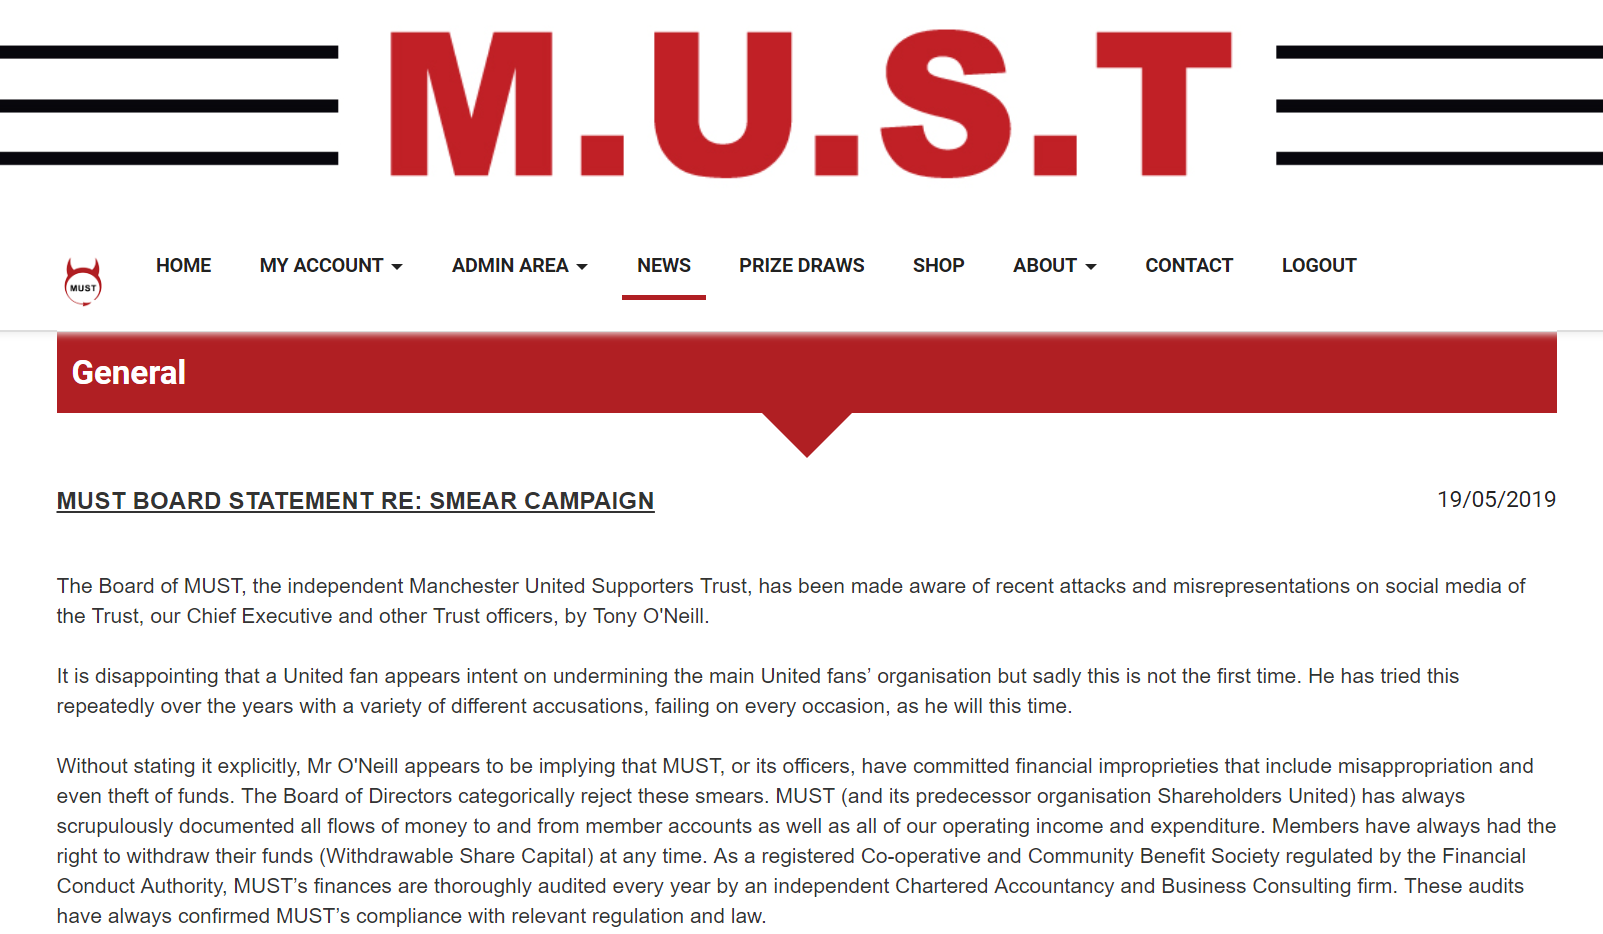 MUST BOARD STATEMENT RE: SMEAR CAMPAIGN